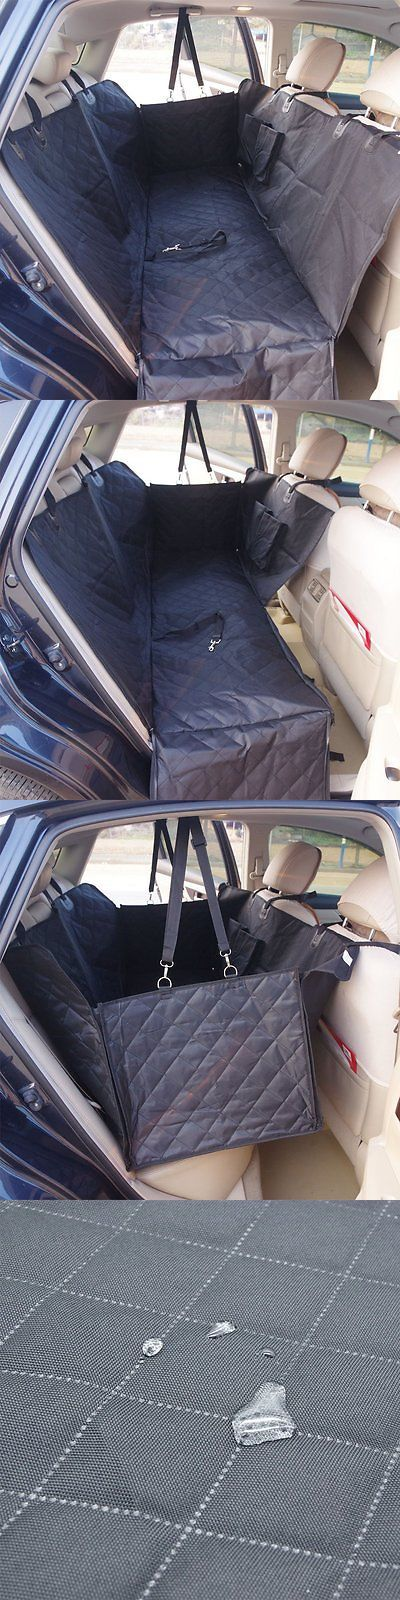 Car Seat Covers 117426: Waterproof Dog Car Seat Cover Backseat Large Pet Seat Cover Hammock Mat For Suvs -> BUY IT NOW ONLY: $45.14 on eBay!